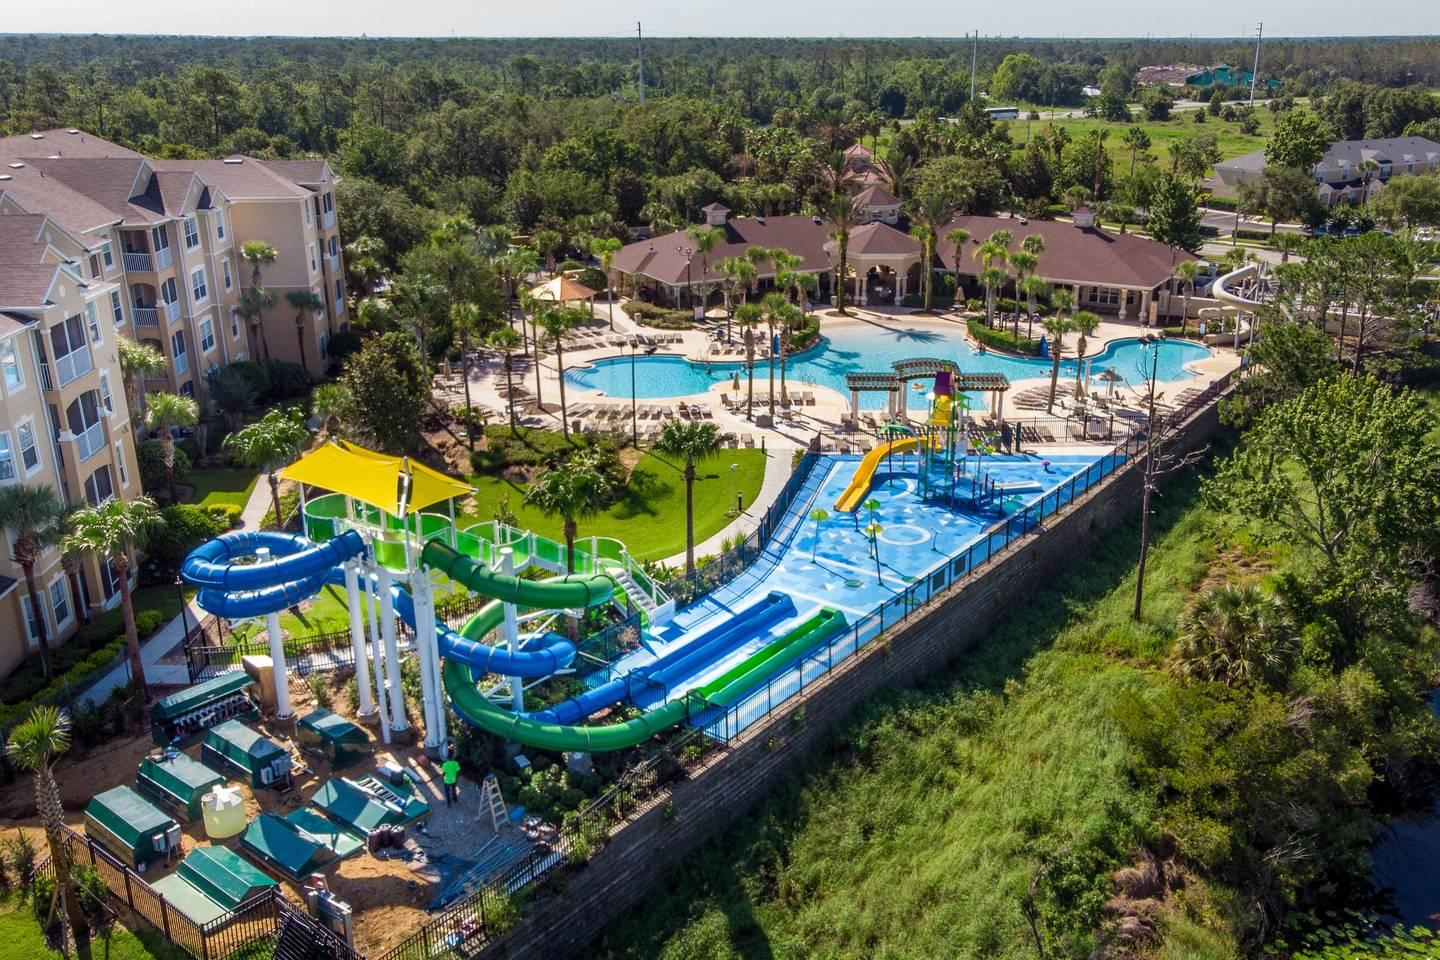 Free Water Park with 2 slides!!